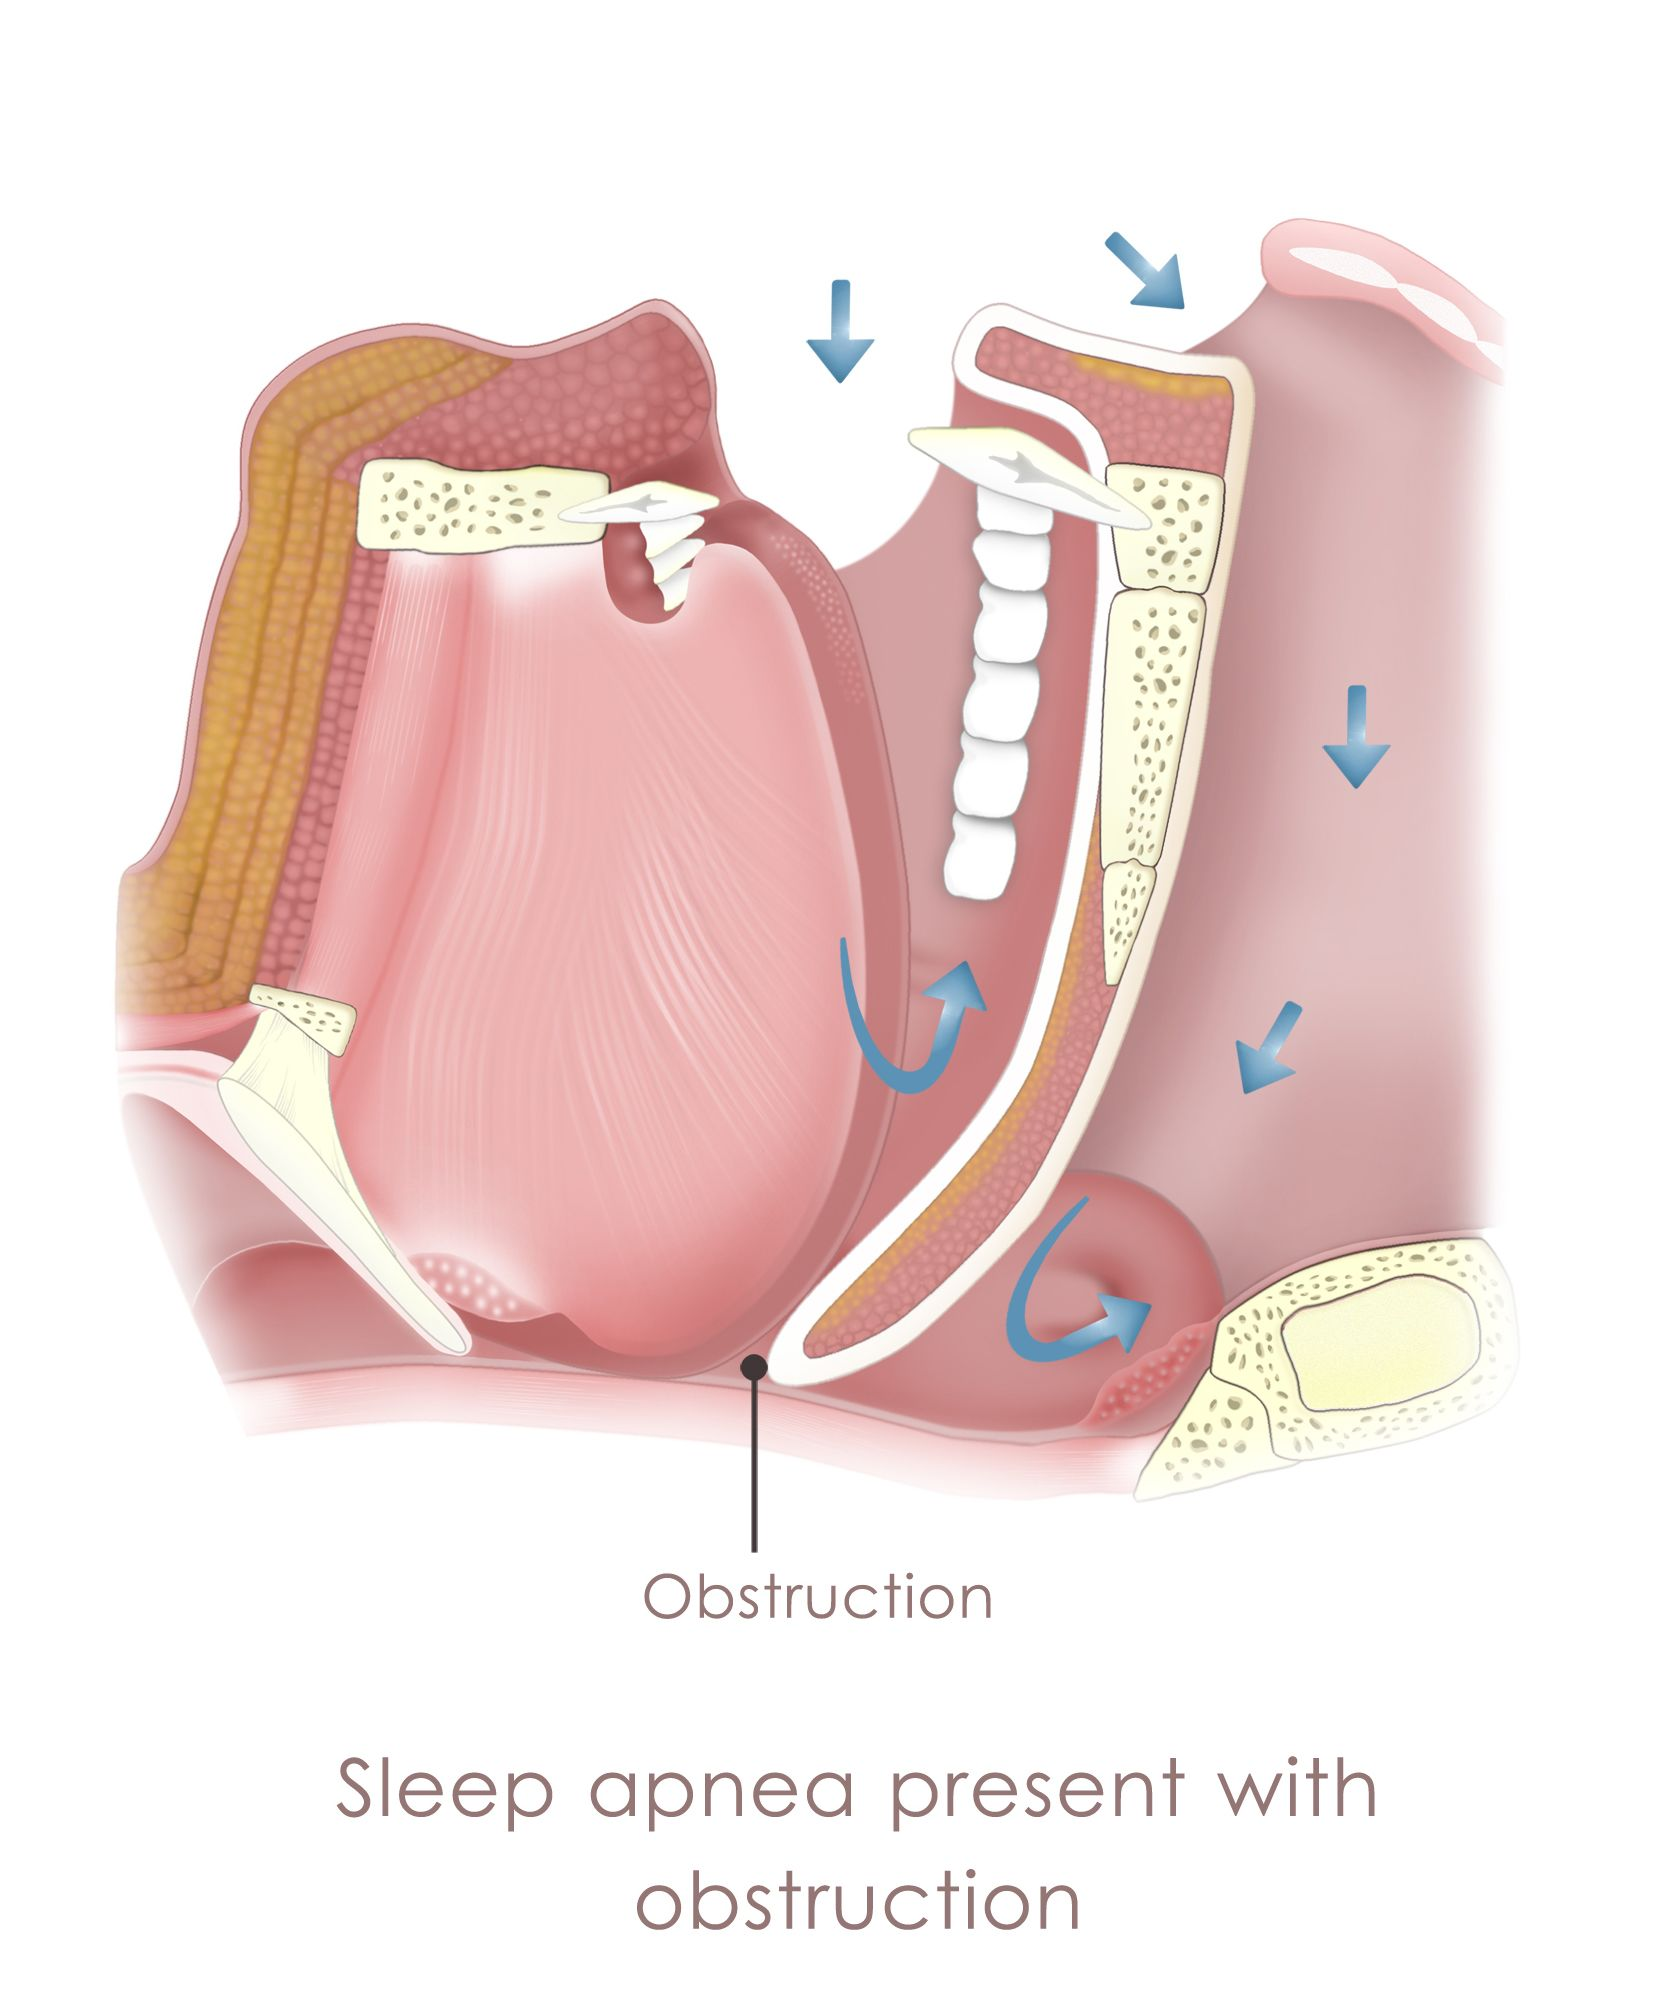 Image of airway obstructed by sleep apnea